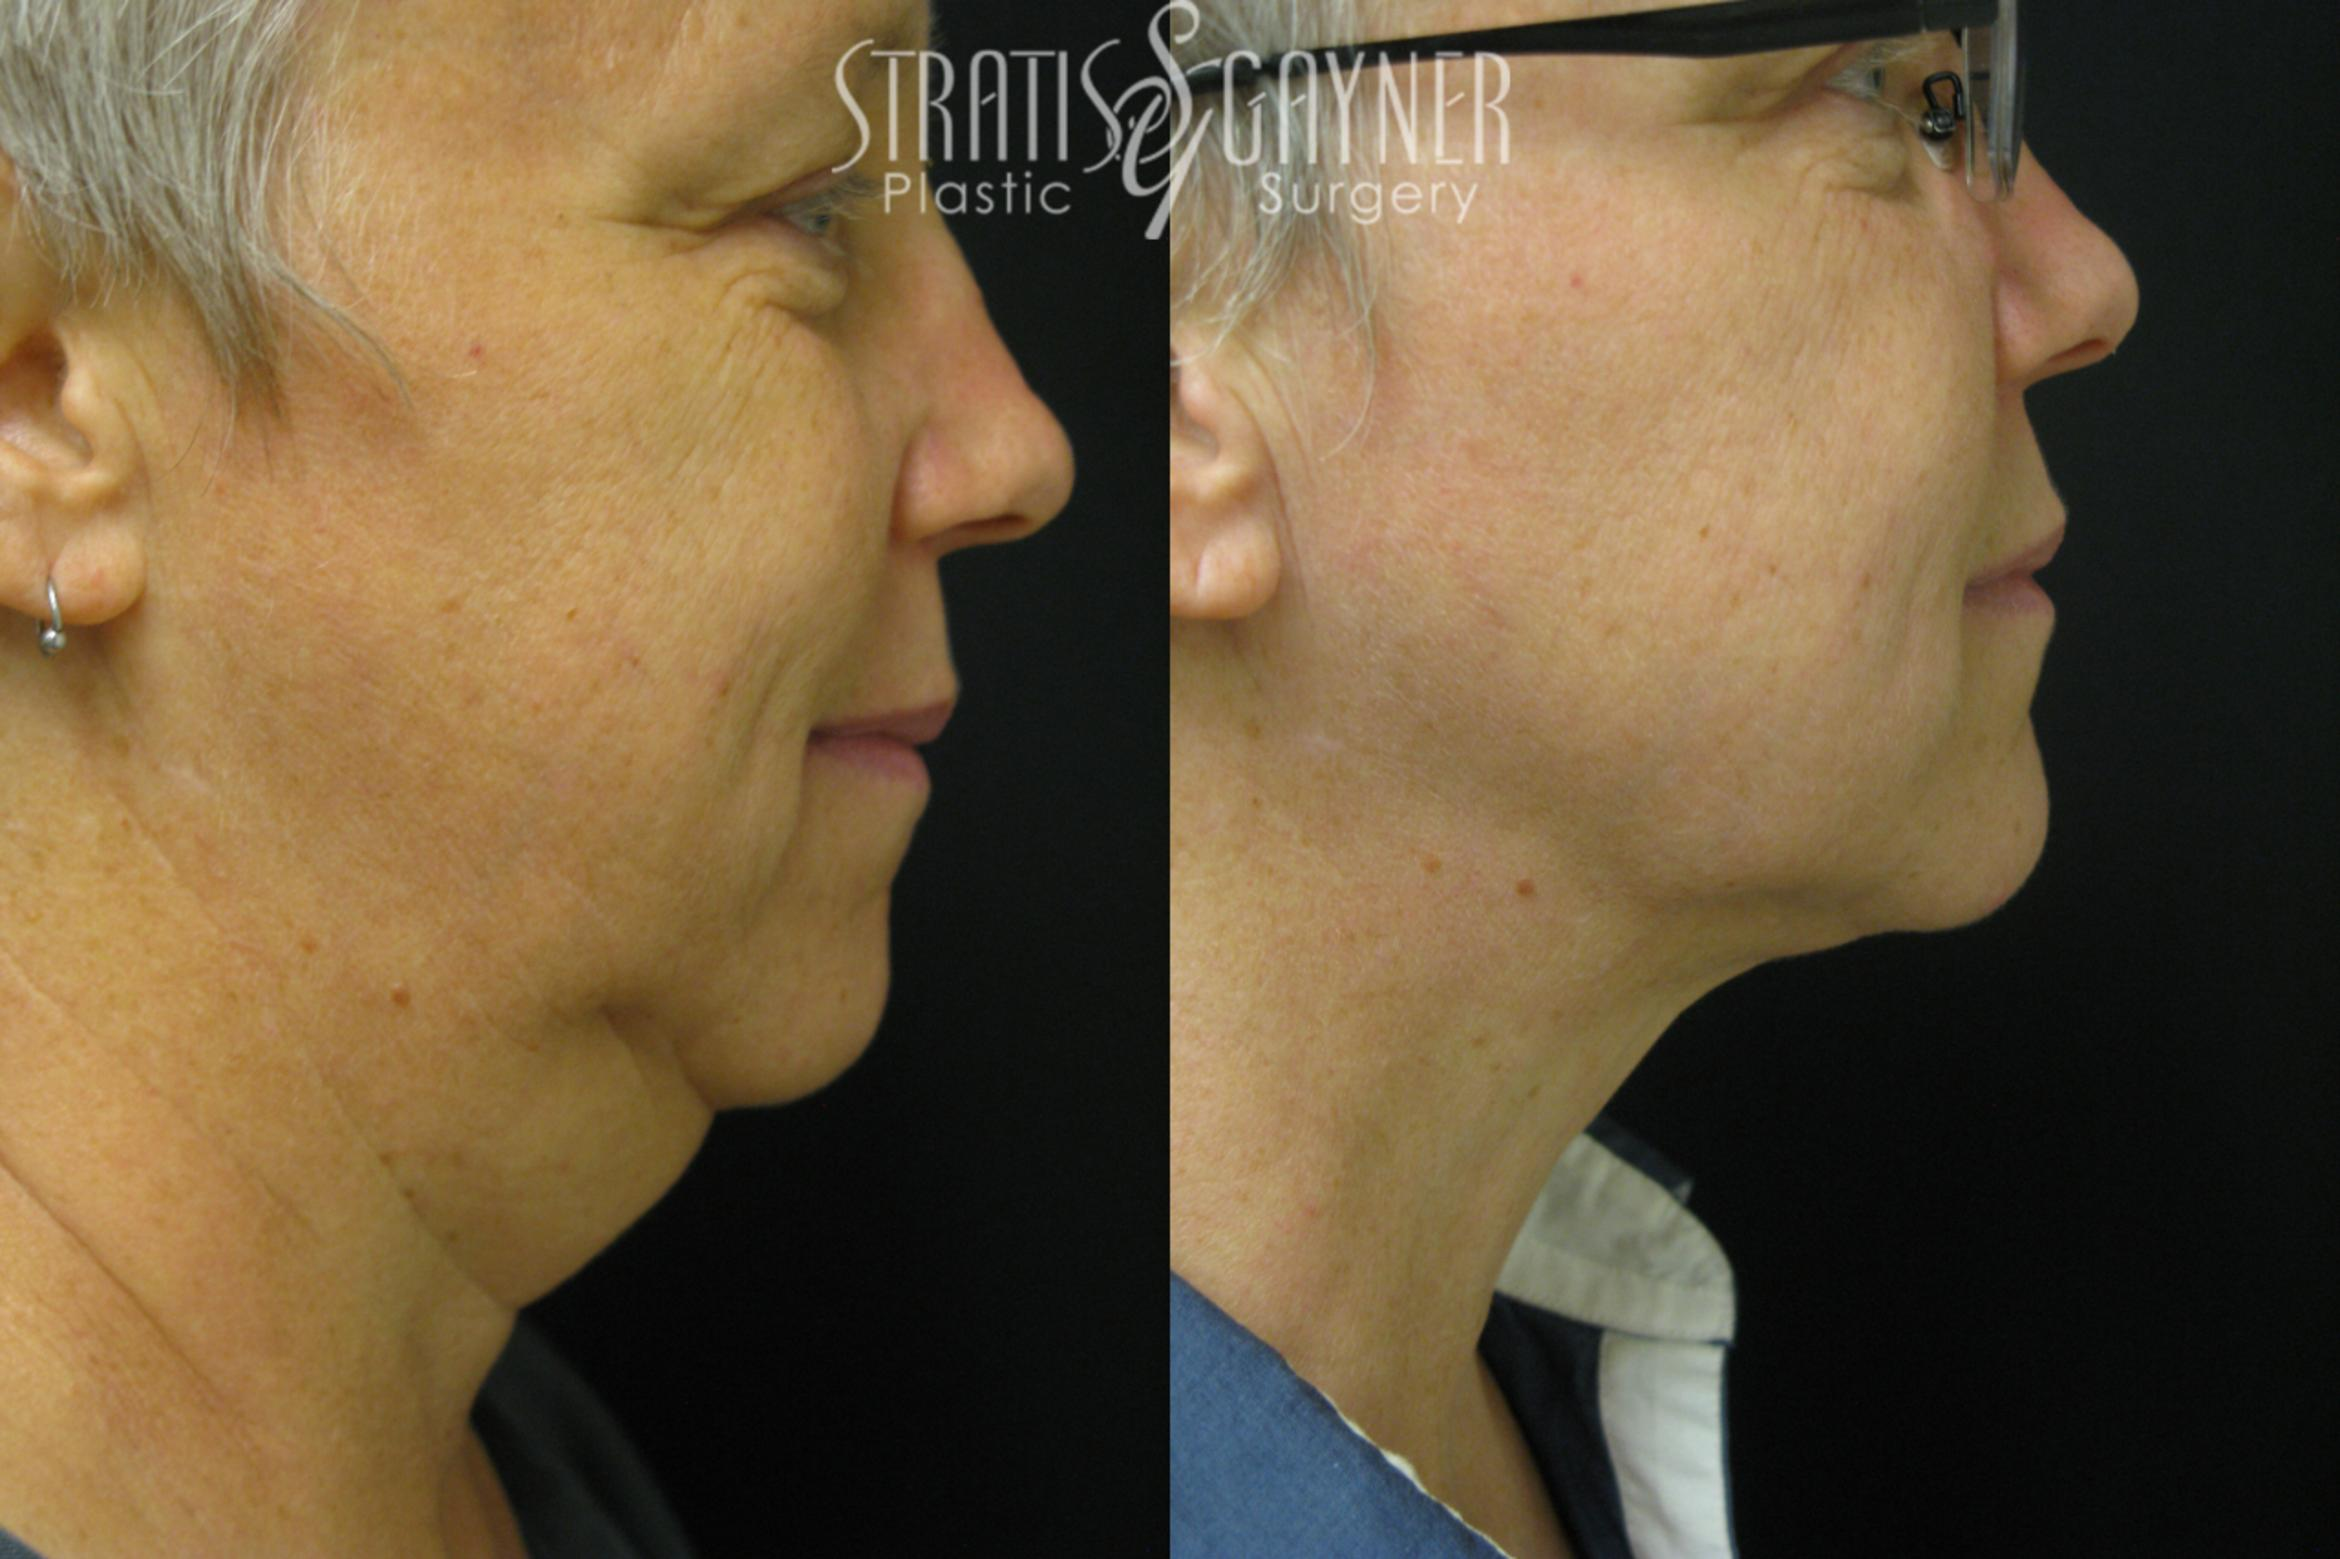 Facial Liposuction Case 35 Before & After View #1 | Harrisburg, PA | Stratis Gayner Plastic Surgery